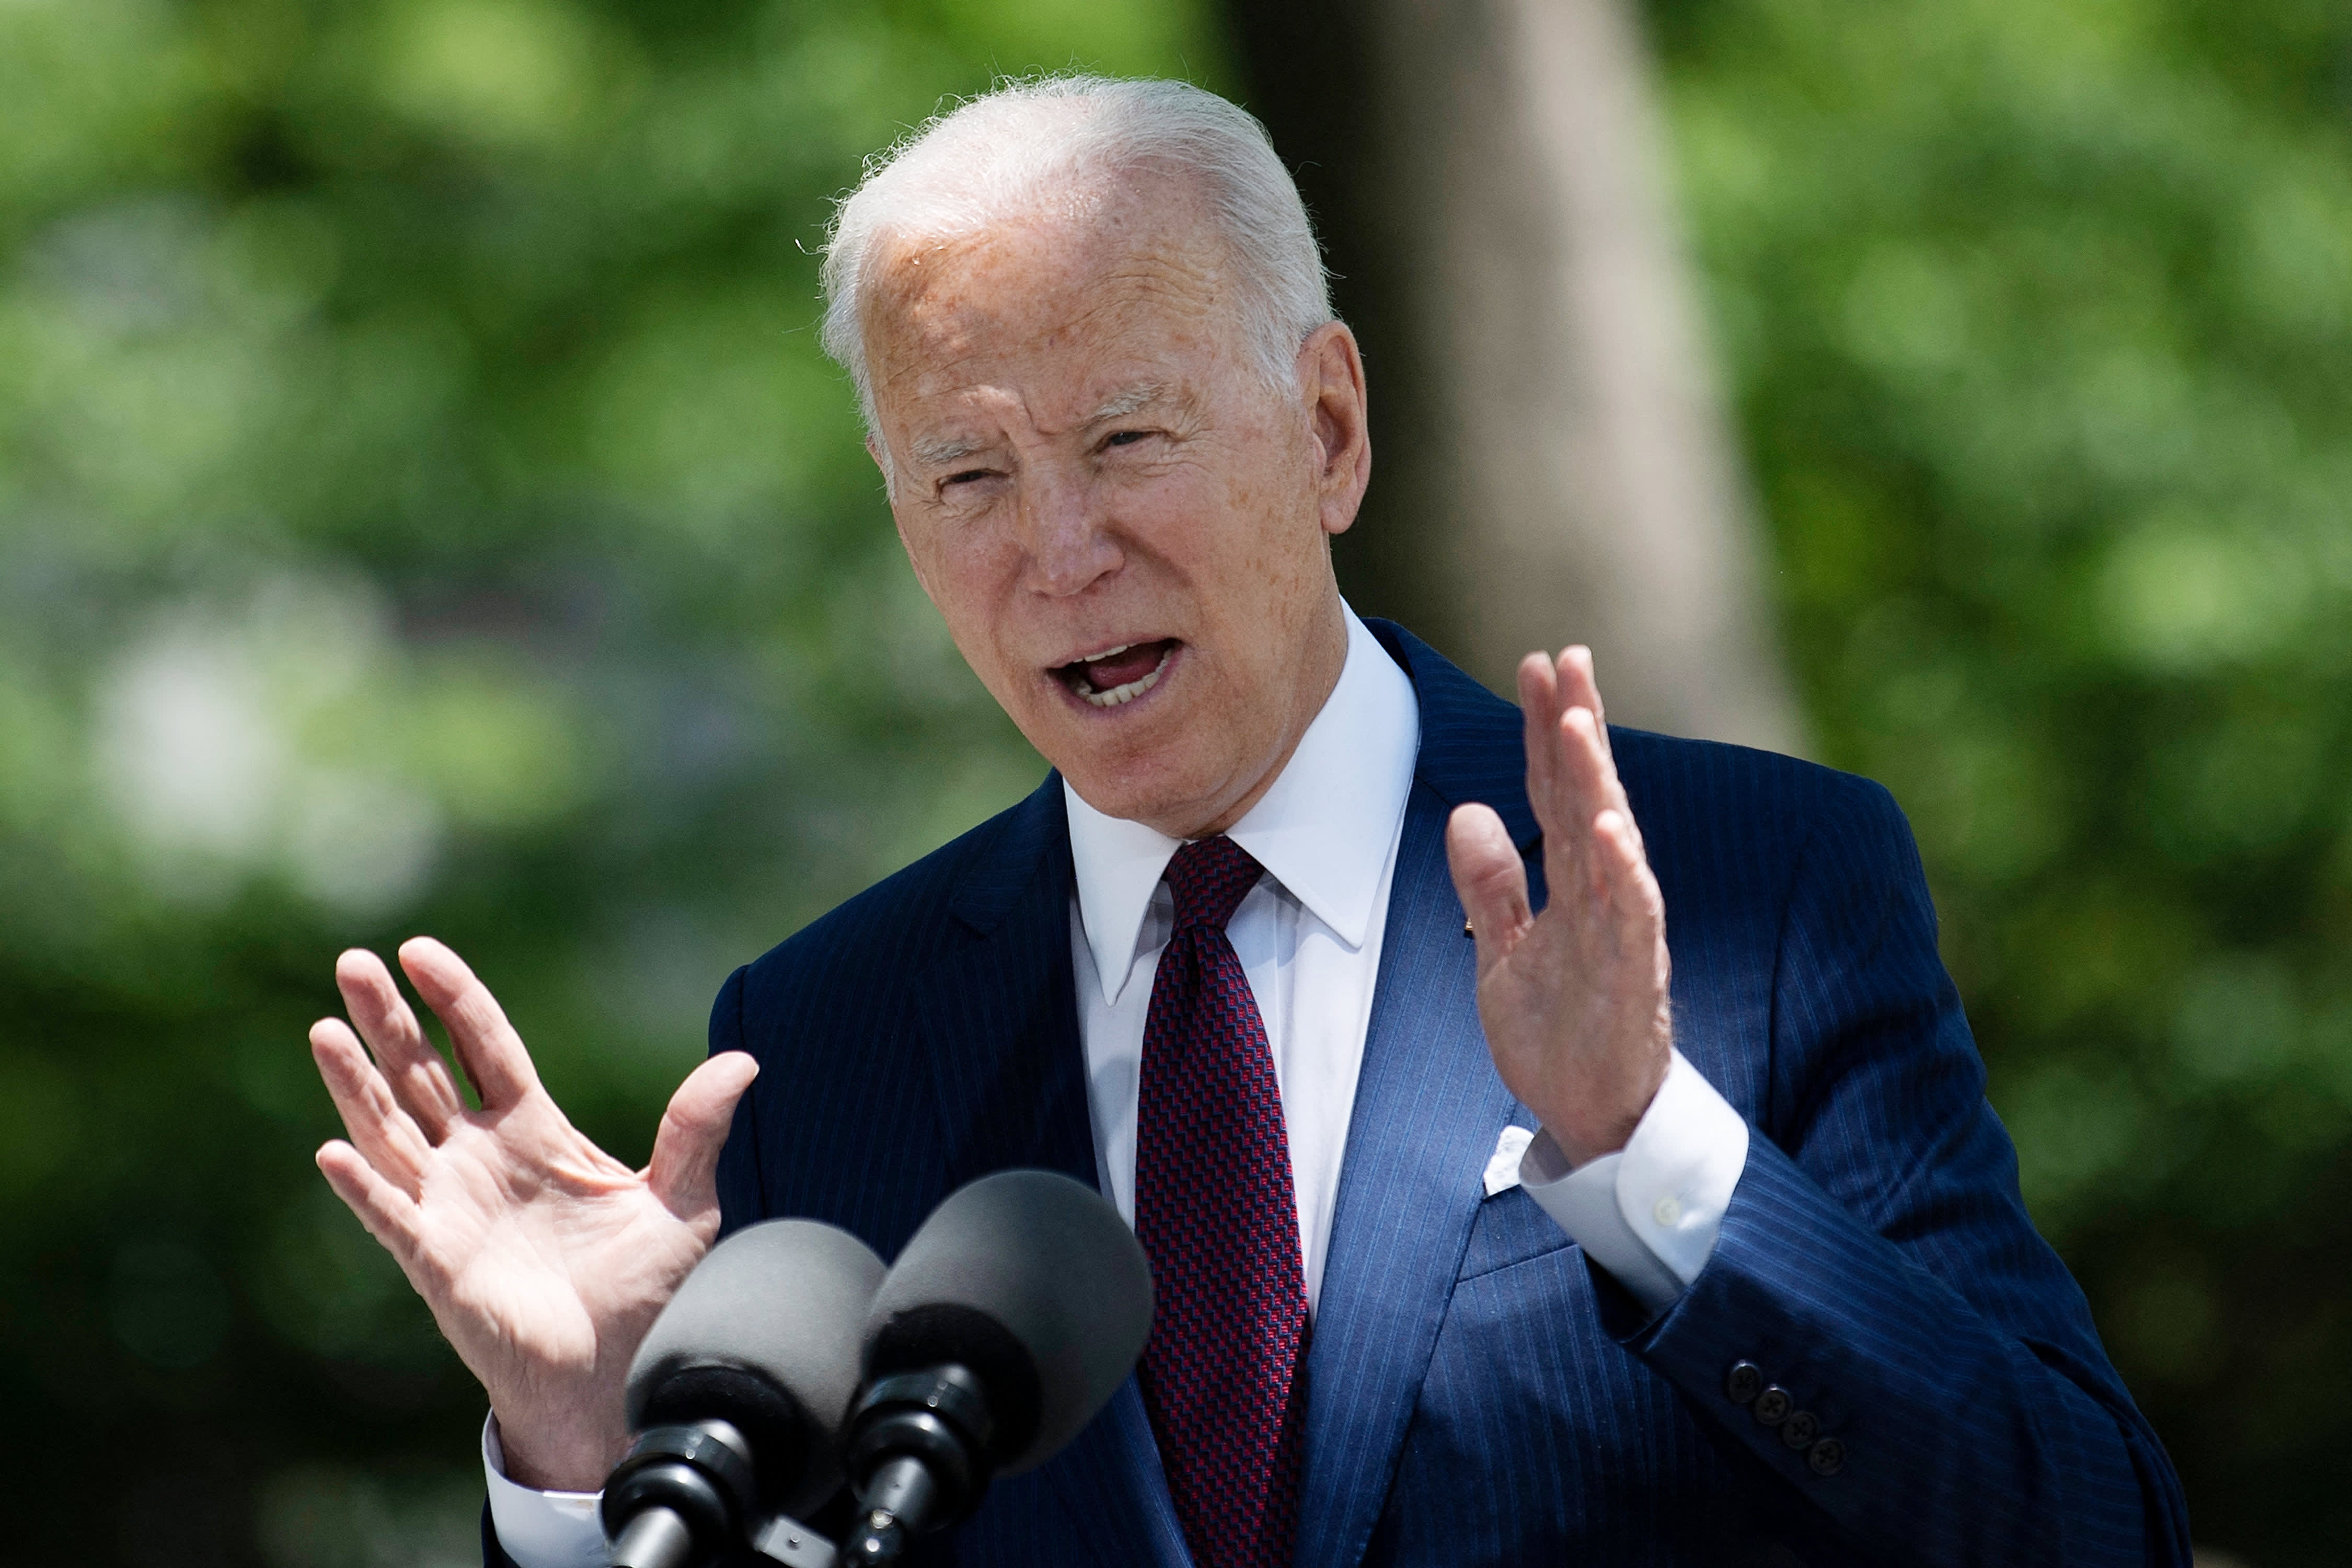 Biden's families plan excludes Medicare expansion, drug price changes backed by Democrats